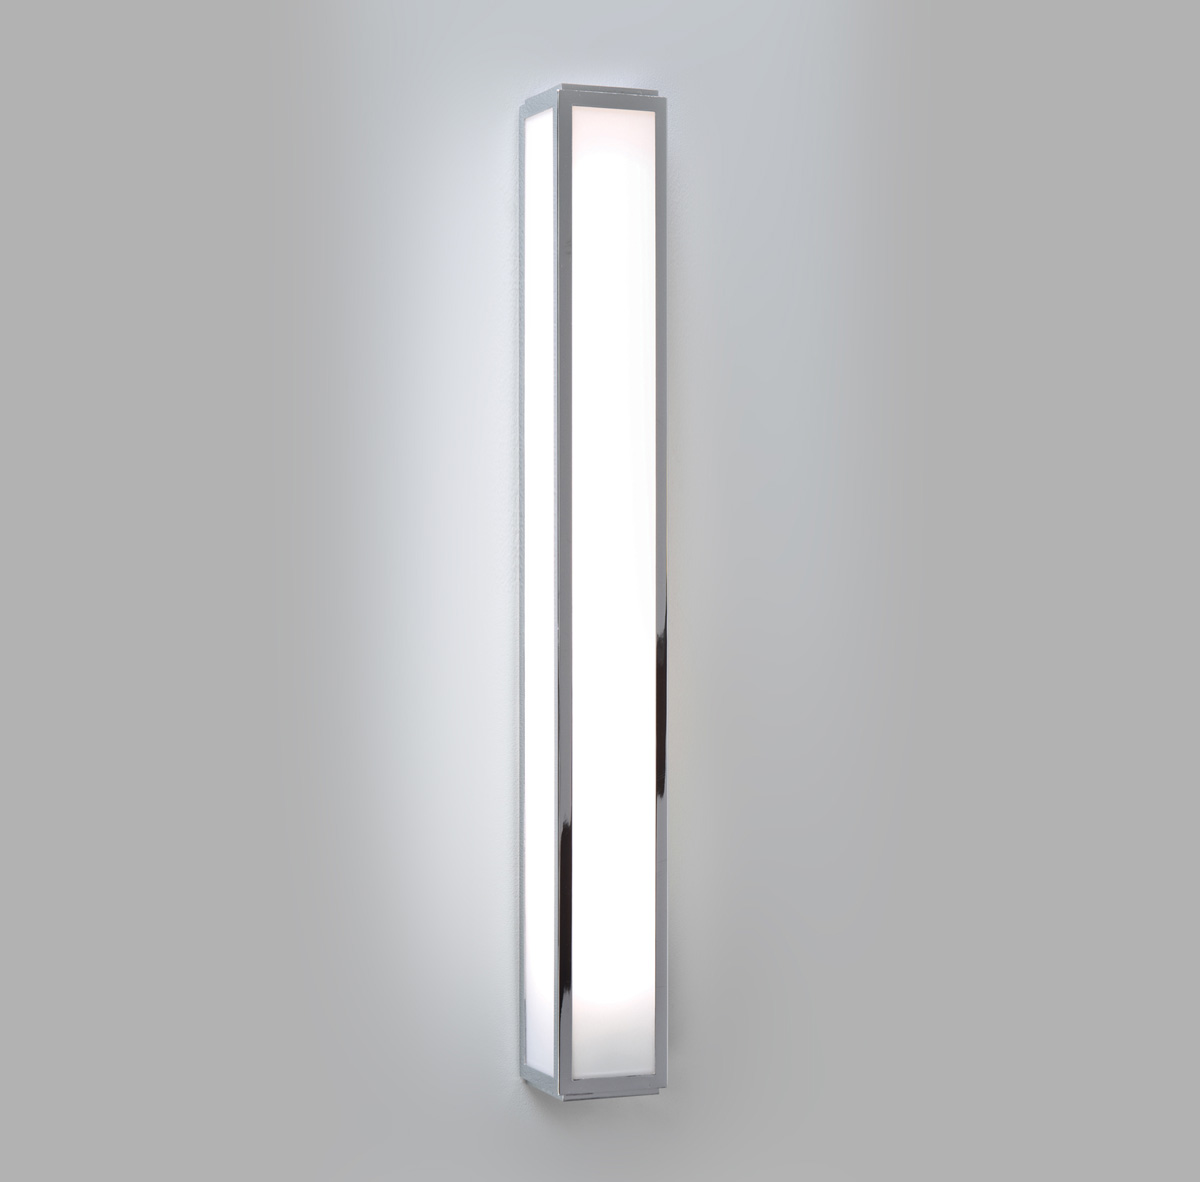 ASTRO MASHIKO 600 0878 Bathroom wall light 1 x 24W HO T5 CFL Polished Chrome Thumbnail 1